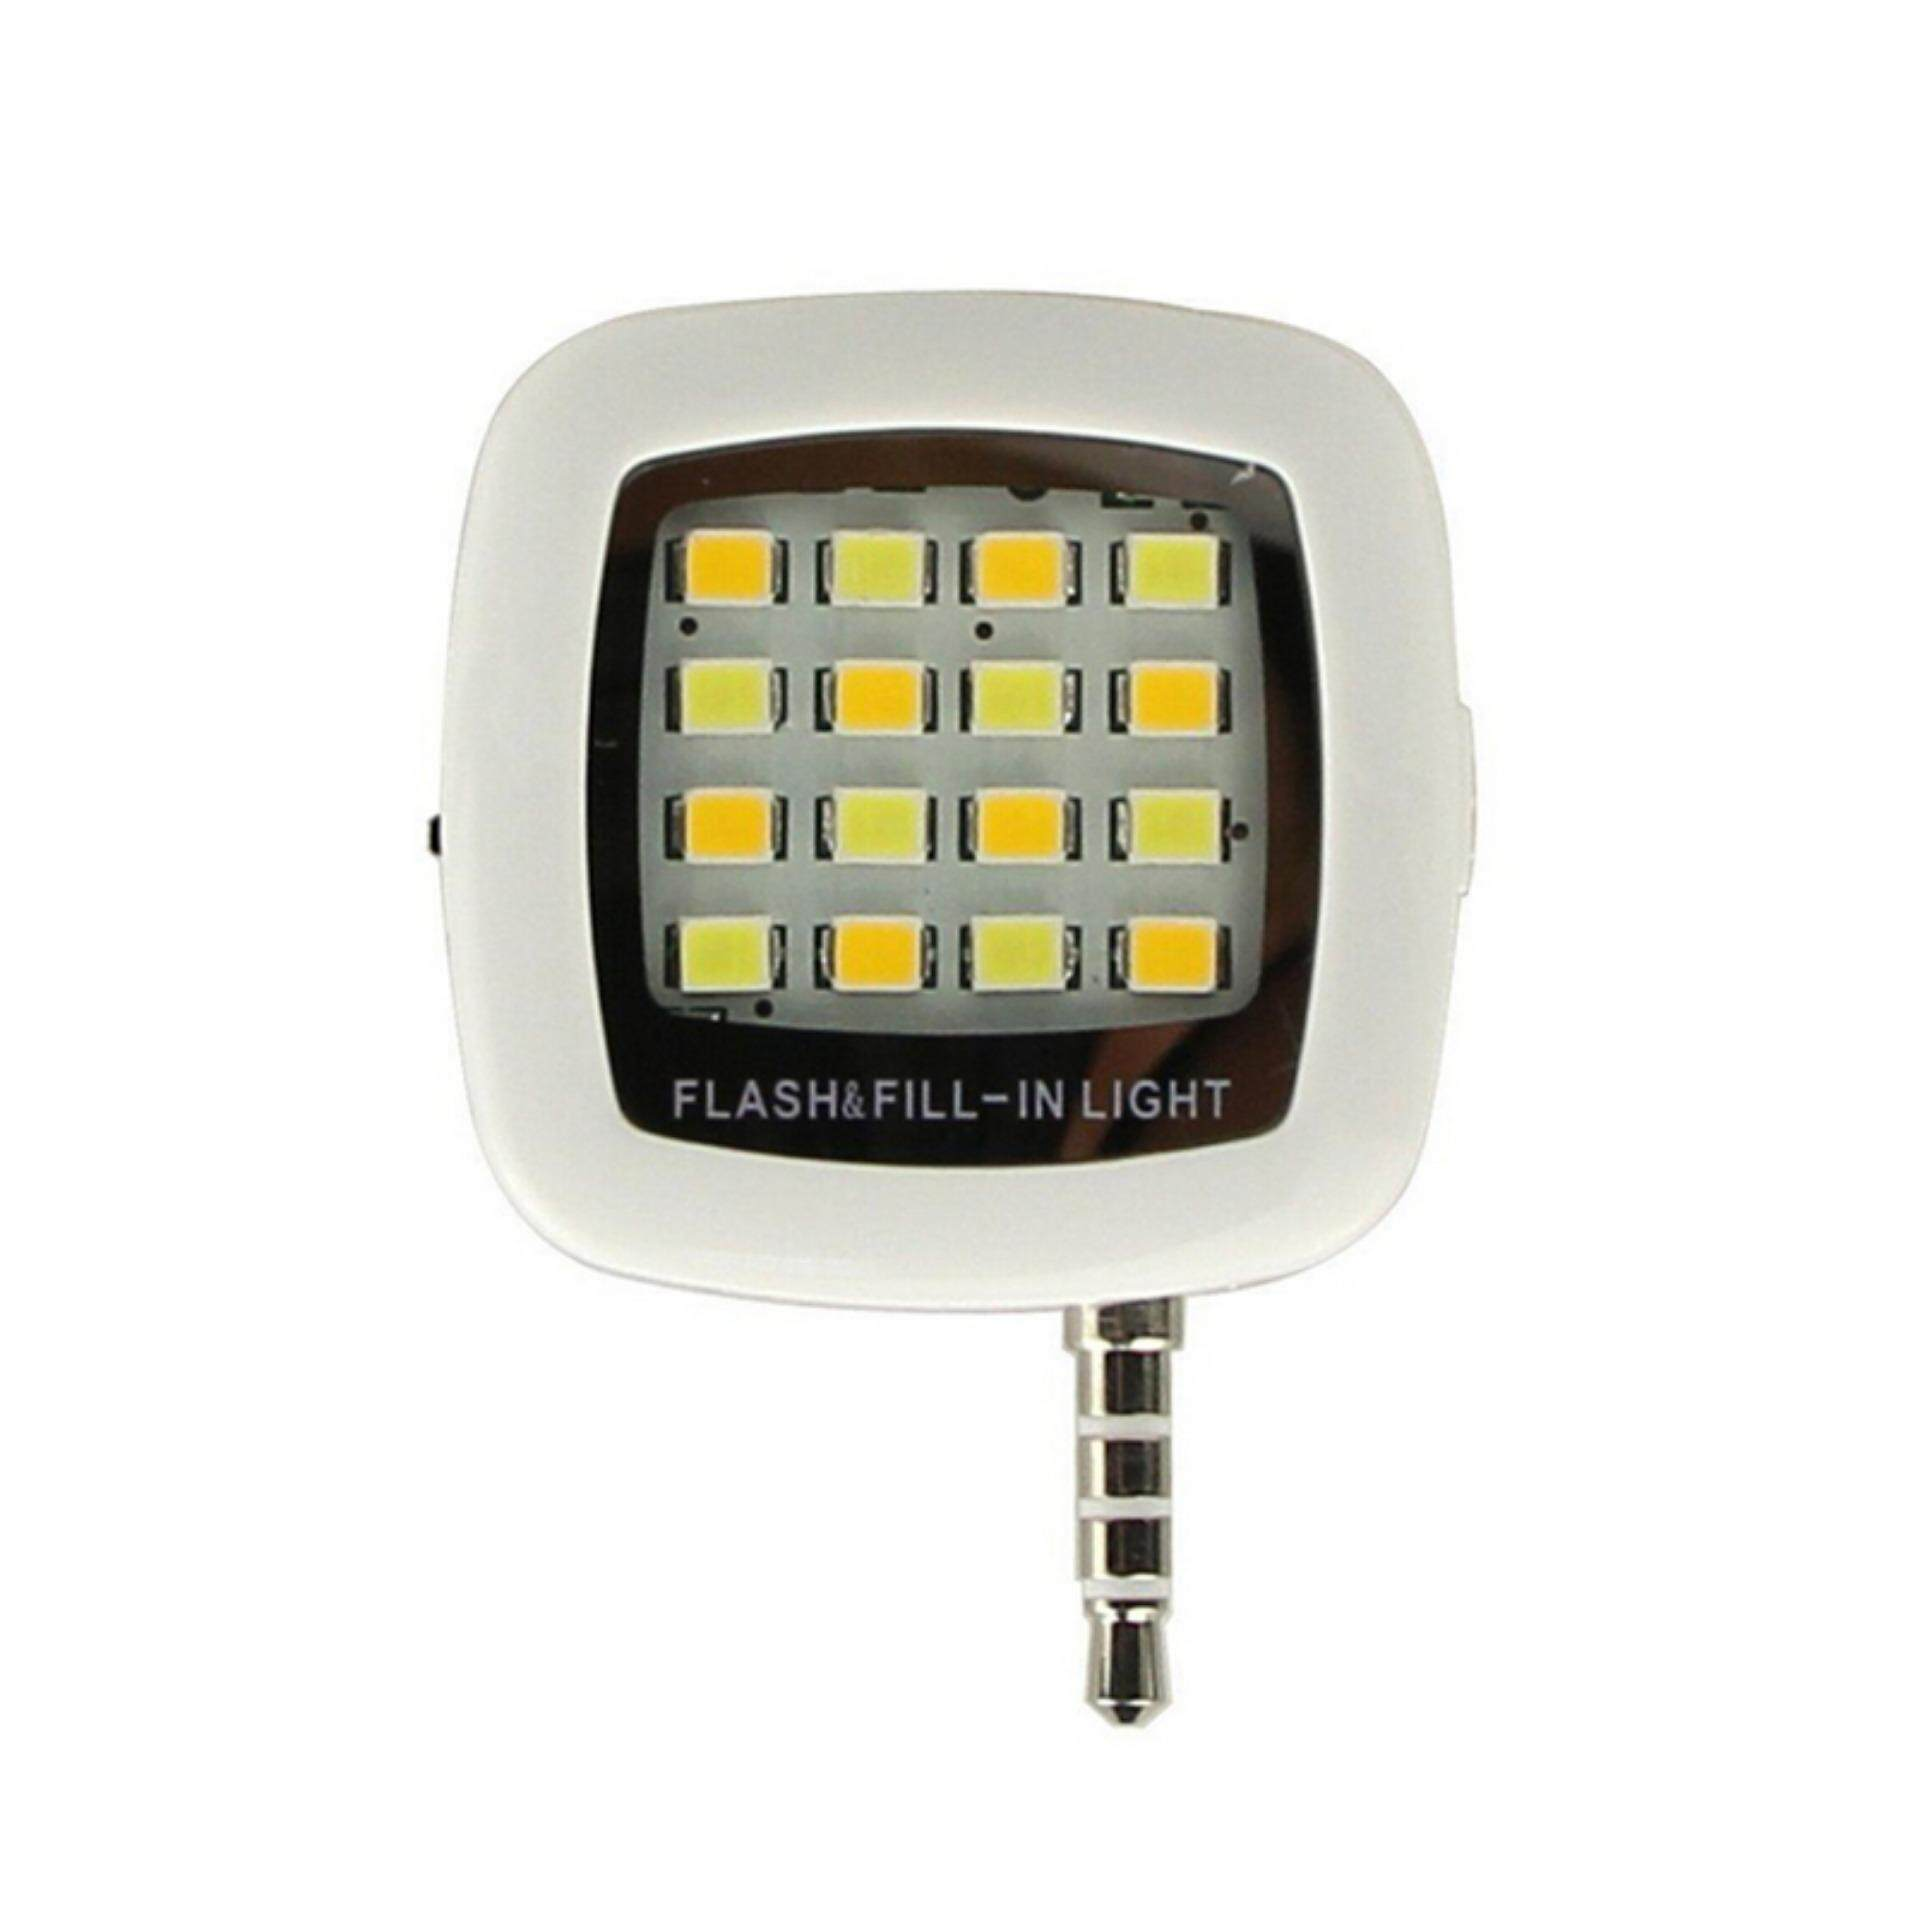 3.5mm Jack Smart Selfie 16 LED Camera Flash Light For IOS Android iPhone 5s 6 6+ White